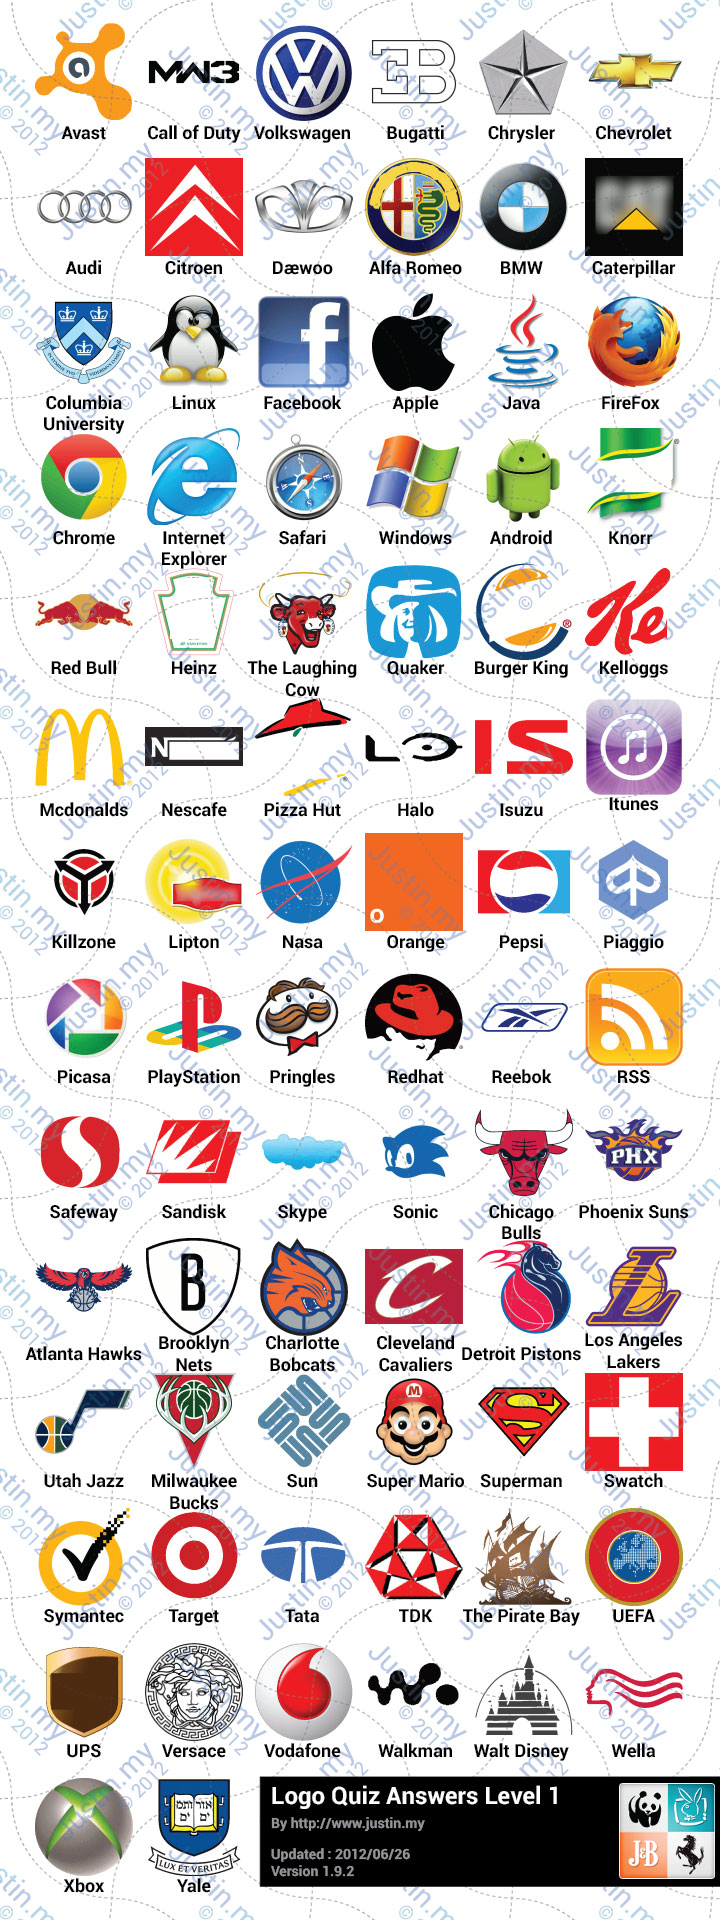 Restaurant Logo Game Answers